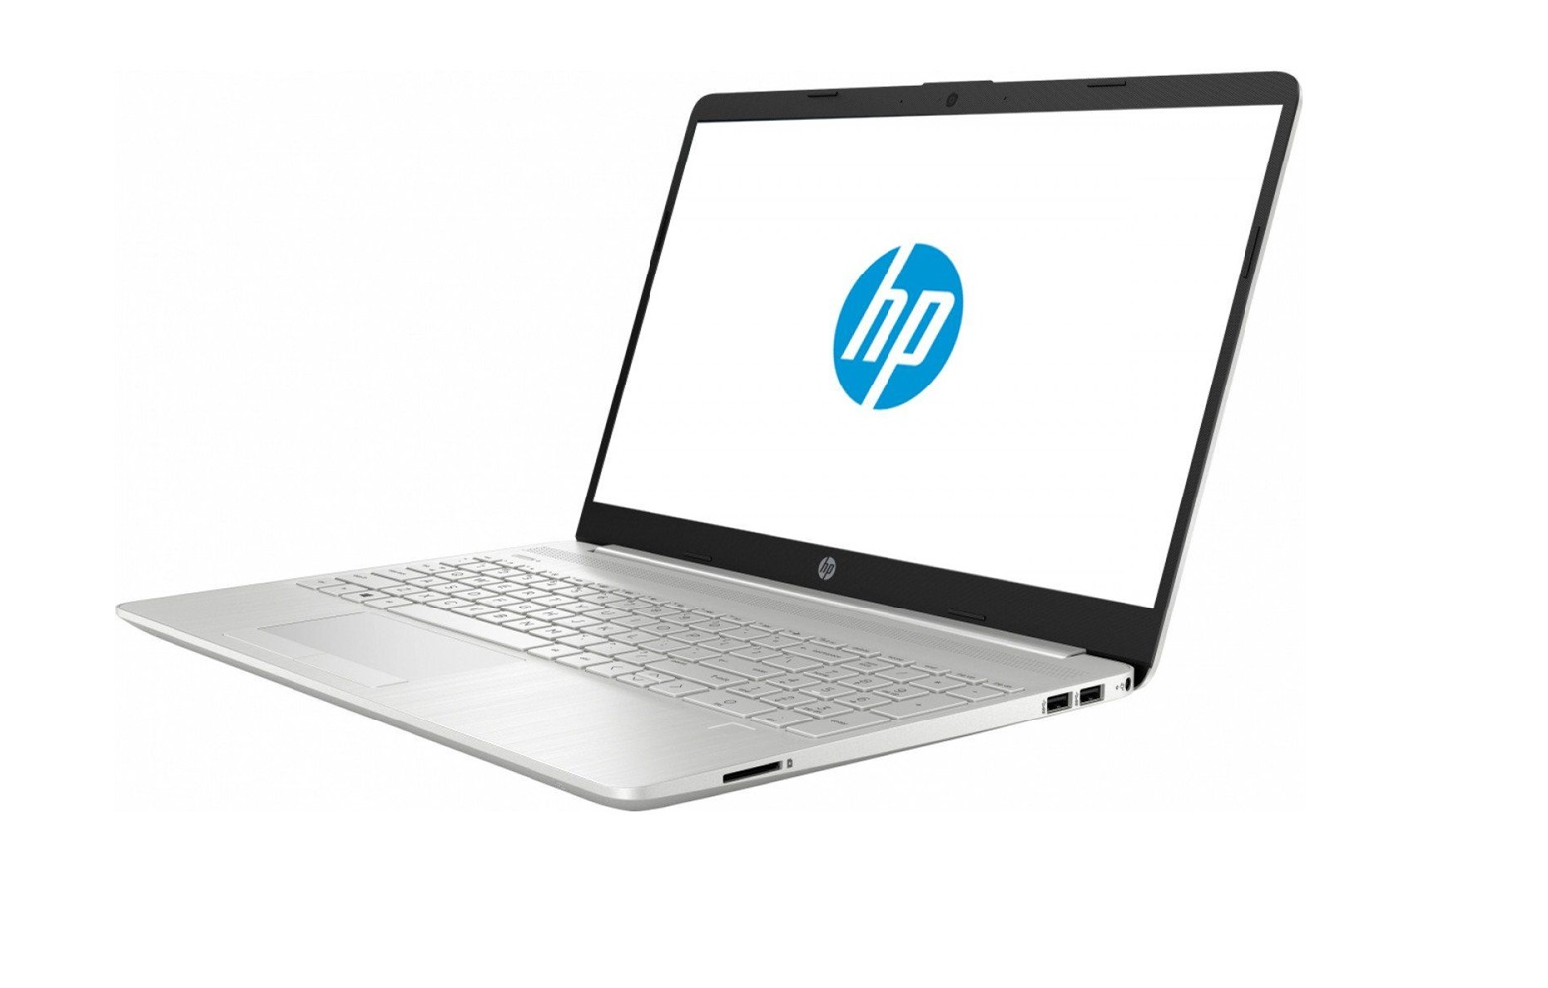 storage/backend/assets/images/product/1615290605lxjK-HP-11th-2.jpg